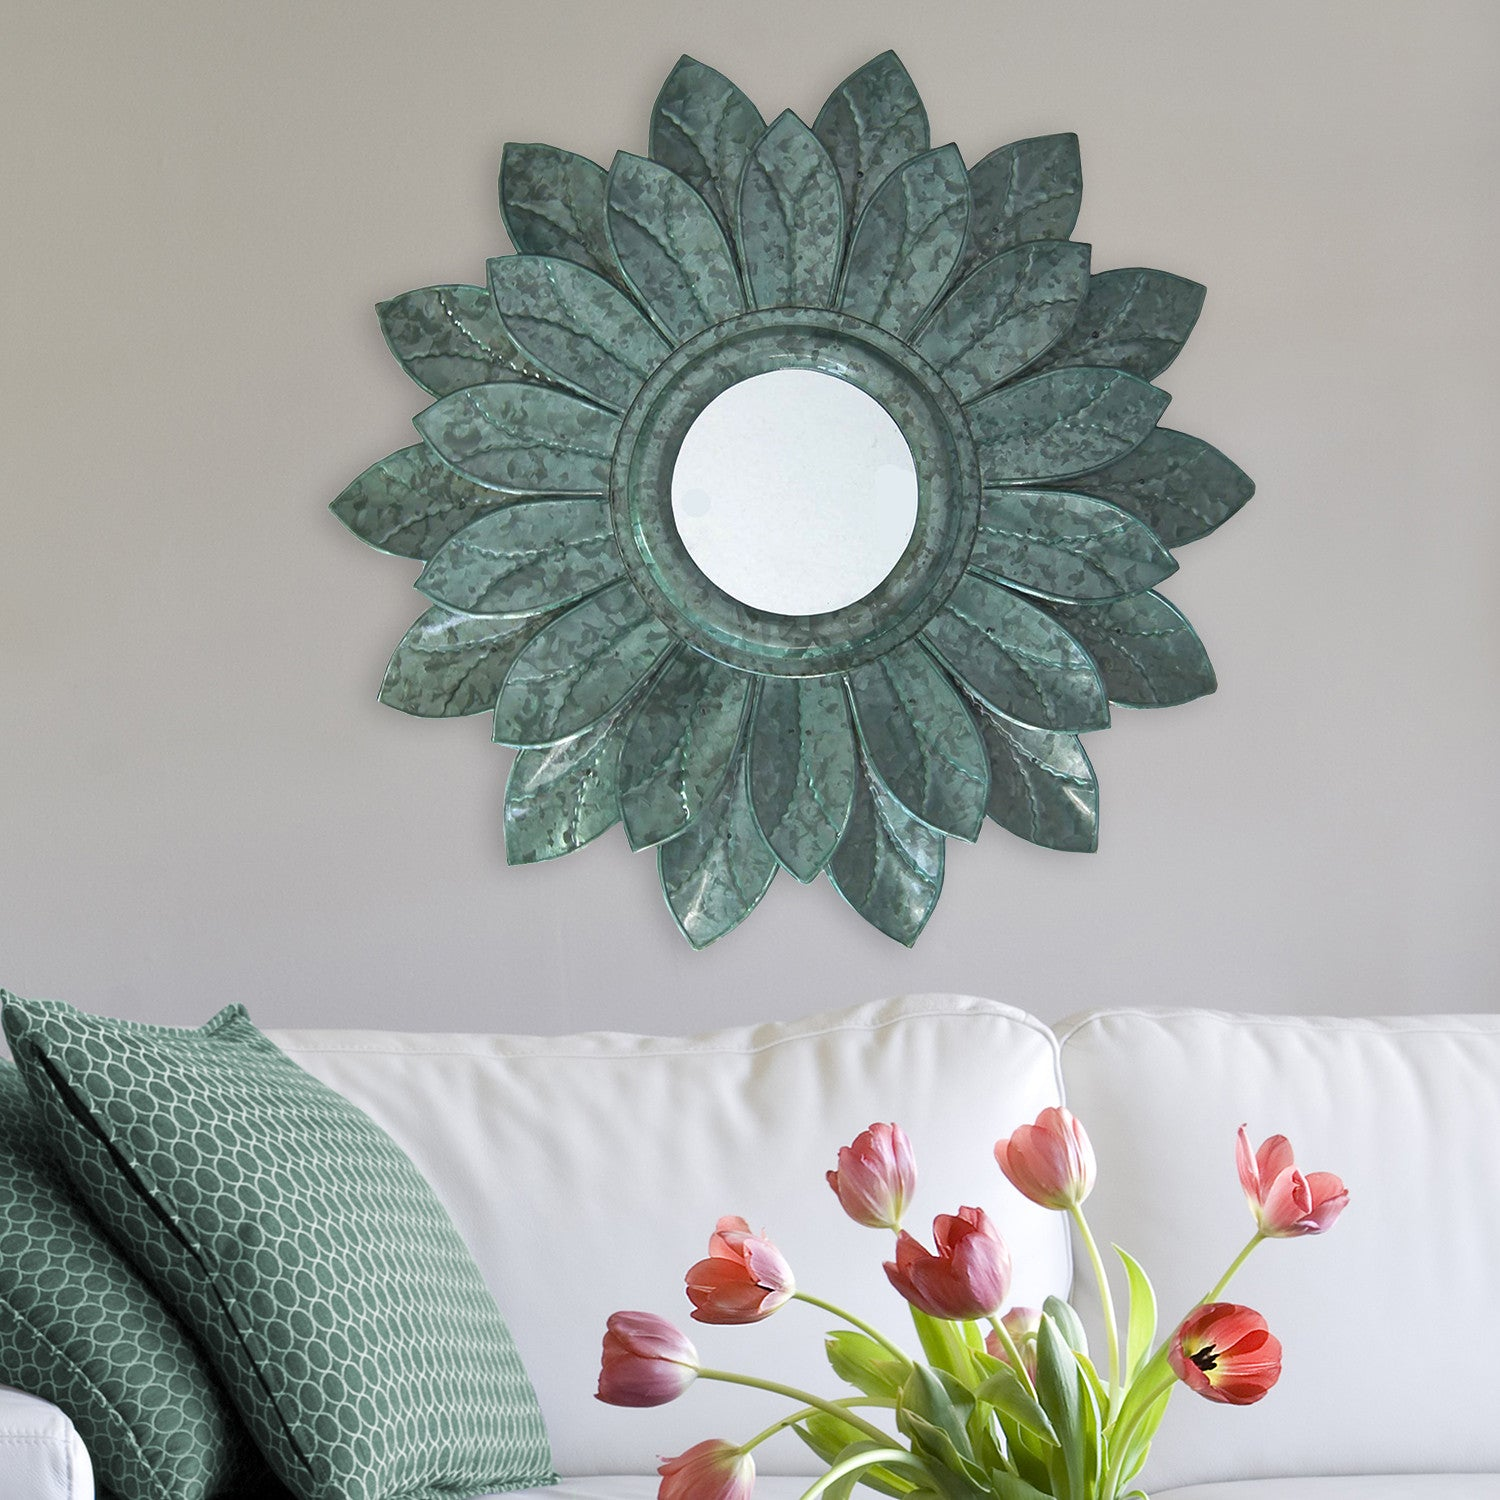 Metallic Sunflower Mirror Wall Décor – Stratton Home Decor